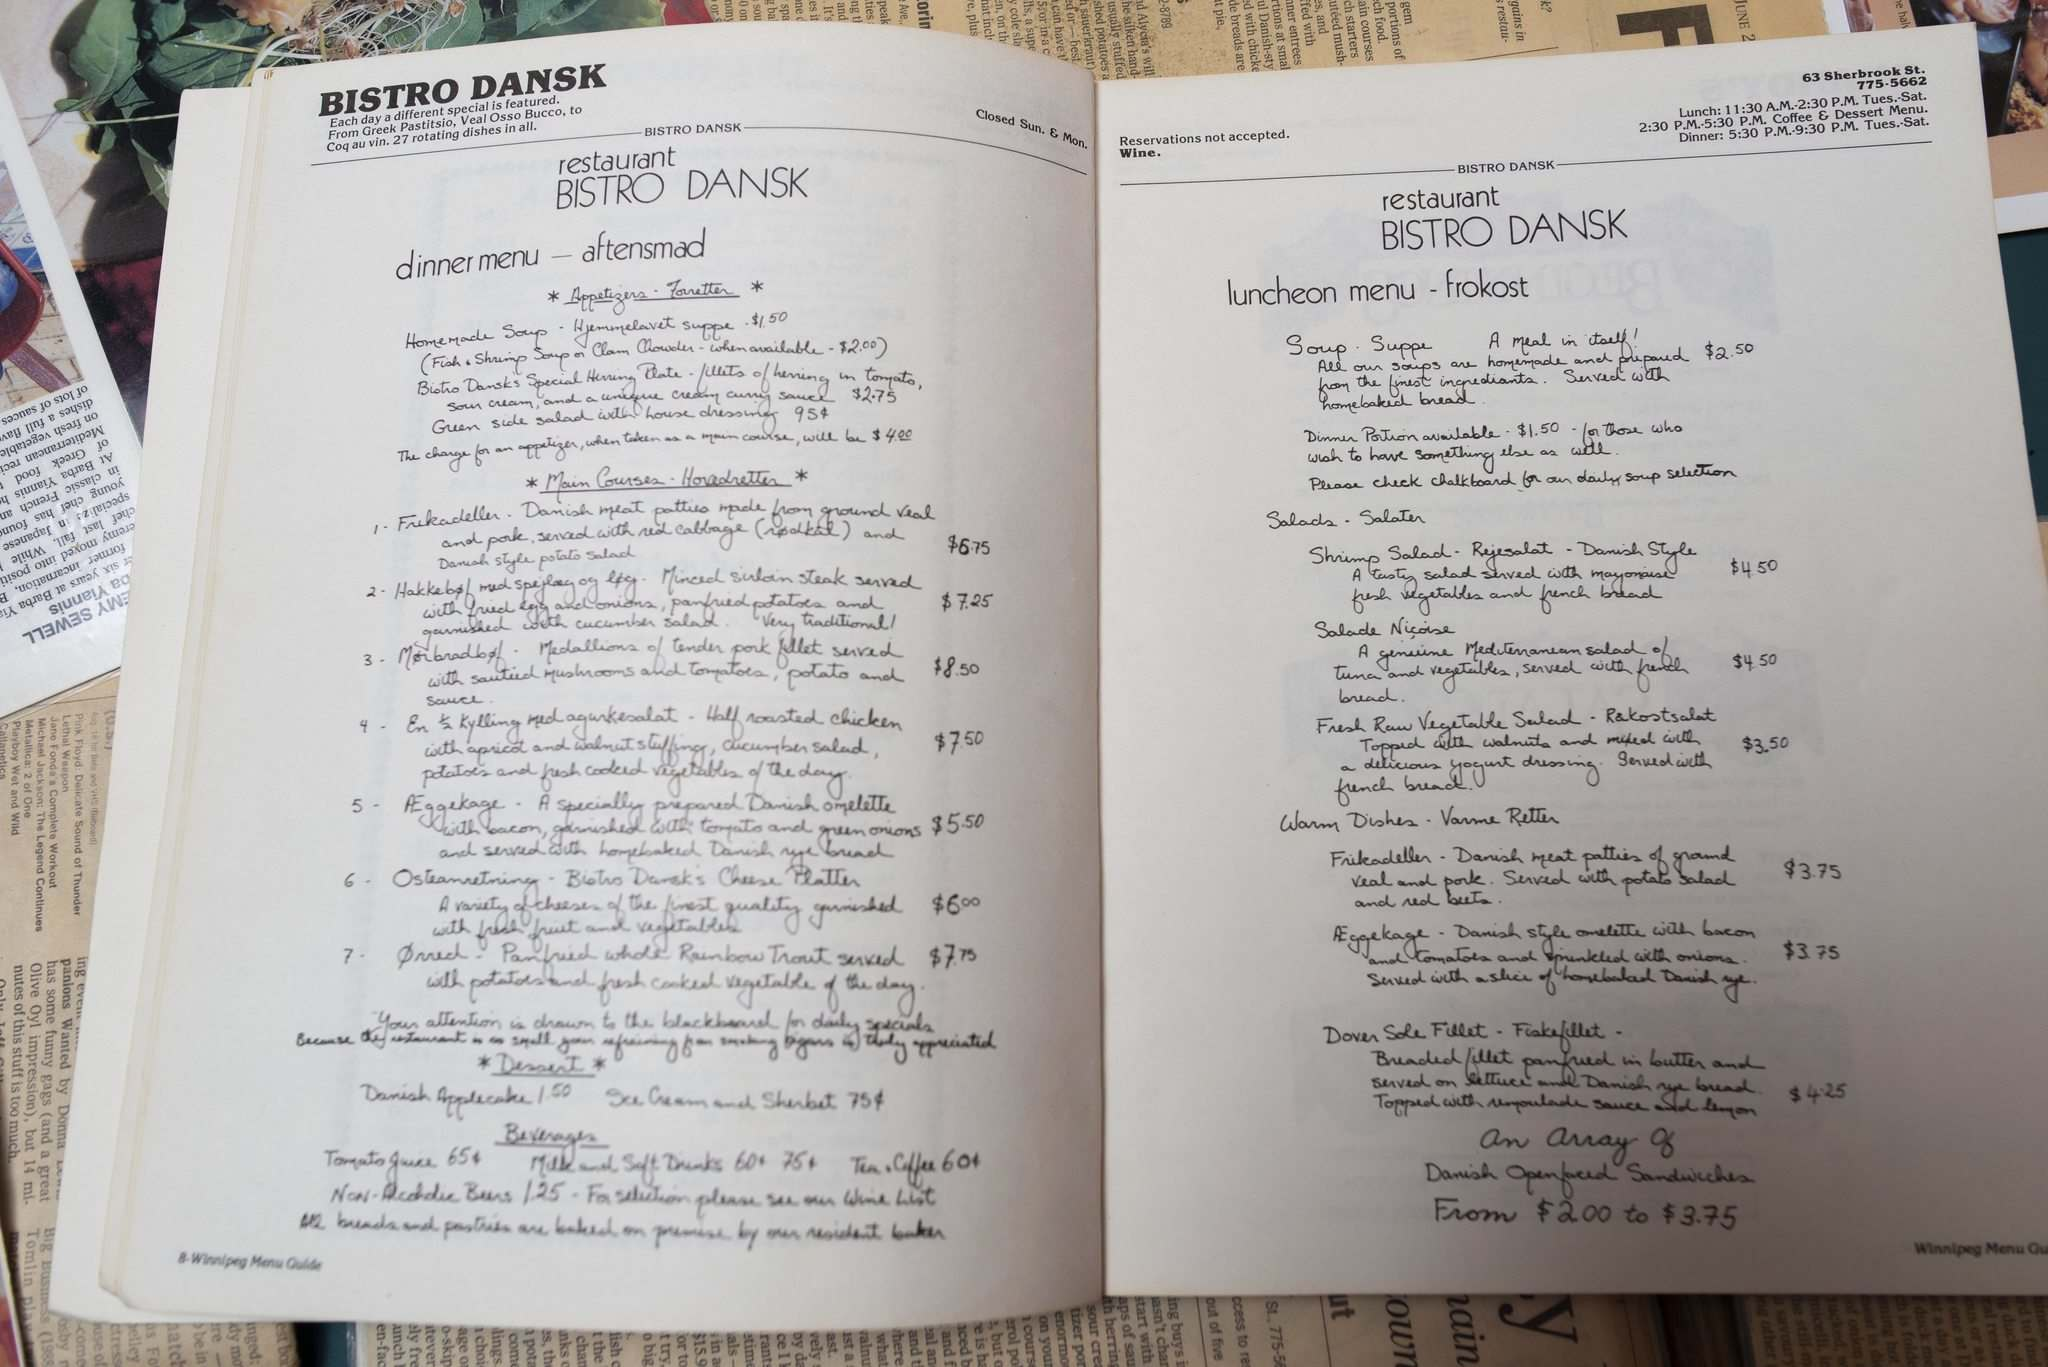 Every so often, younger customers will recommend updating the menu, and then regulars will say 'No!'</p>